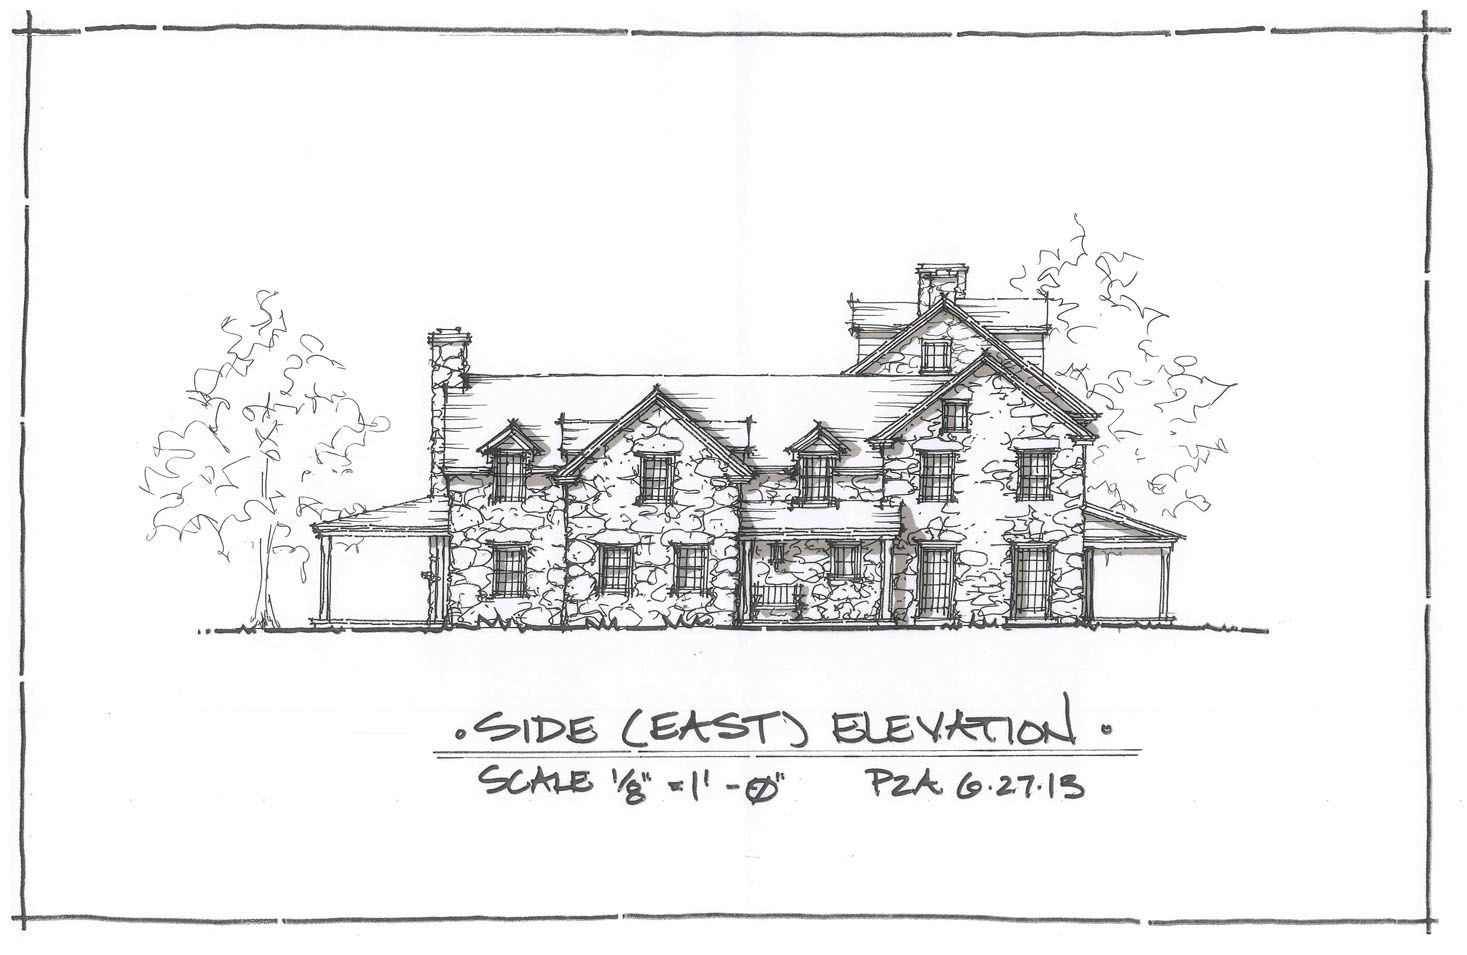 Peter Zimmerman Architects | Sketches & Plans in 2019 | Plan ... on pleasant cove house plan, bedford house plan, morris house plan, austin house plan, farmington house plan, andover house plan, forest lake house plan, the randolph house plan, coleraine house plan, minnesota house plan, albritton house plan, richmond house plan, father bride house plan, walker house plan, houston house plan, waverly house plan, grey's anatomy house plan, the perfect house plan, goetsch-winckler house plan, the ripley house plan,